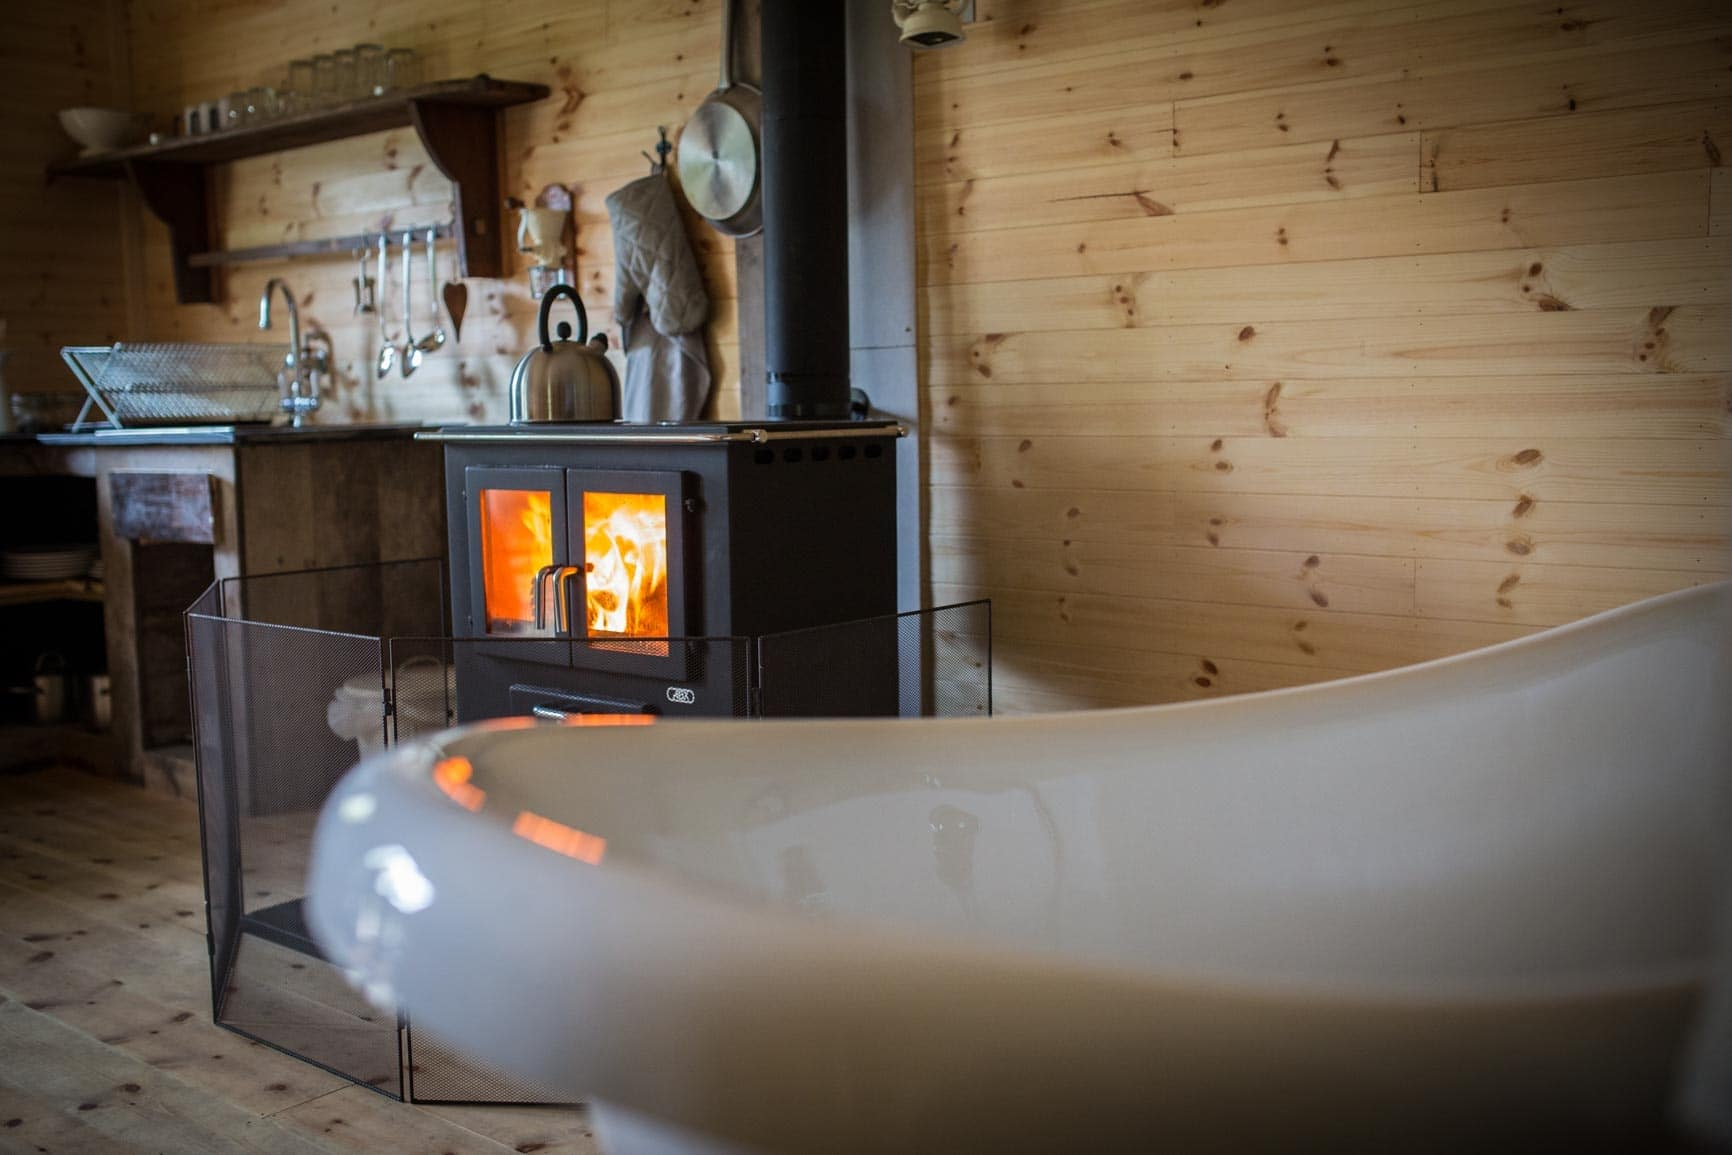 white-roll-top-freestanding-bath-tub-by-woodburner-in-riverside-glamping-tented-lodges